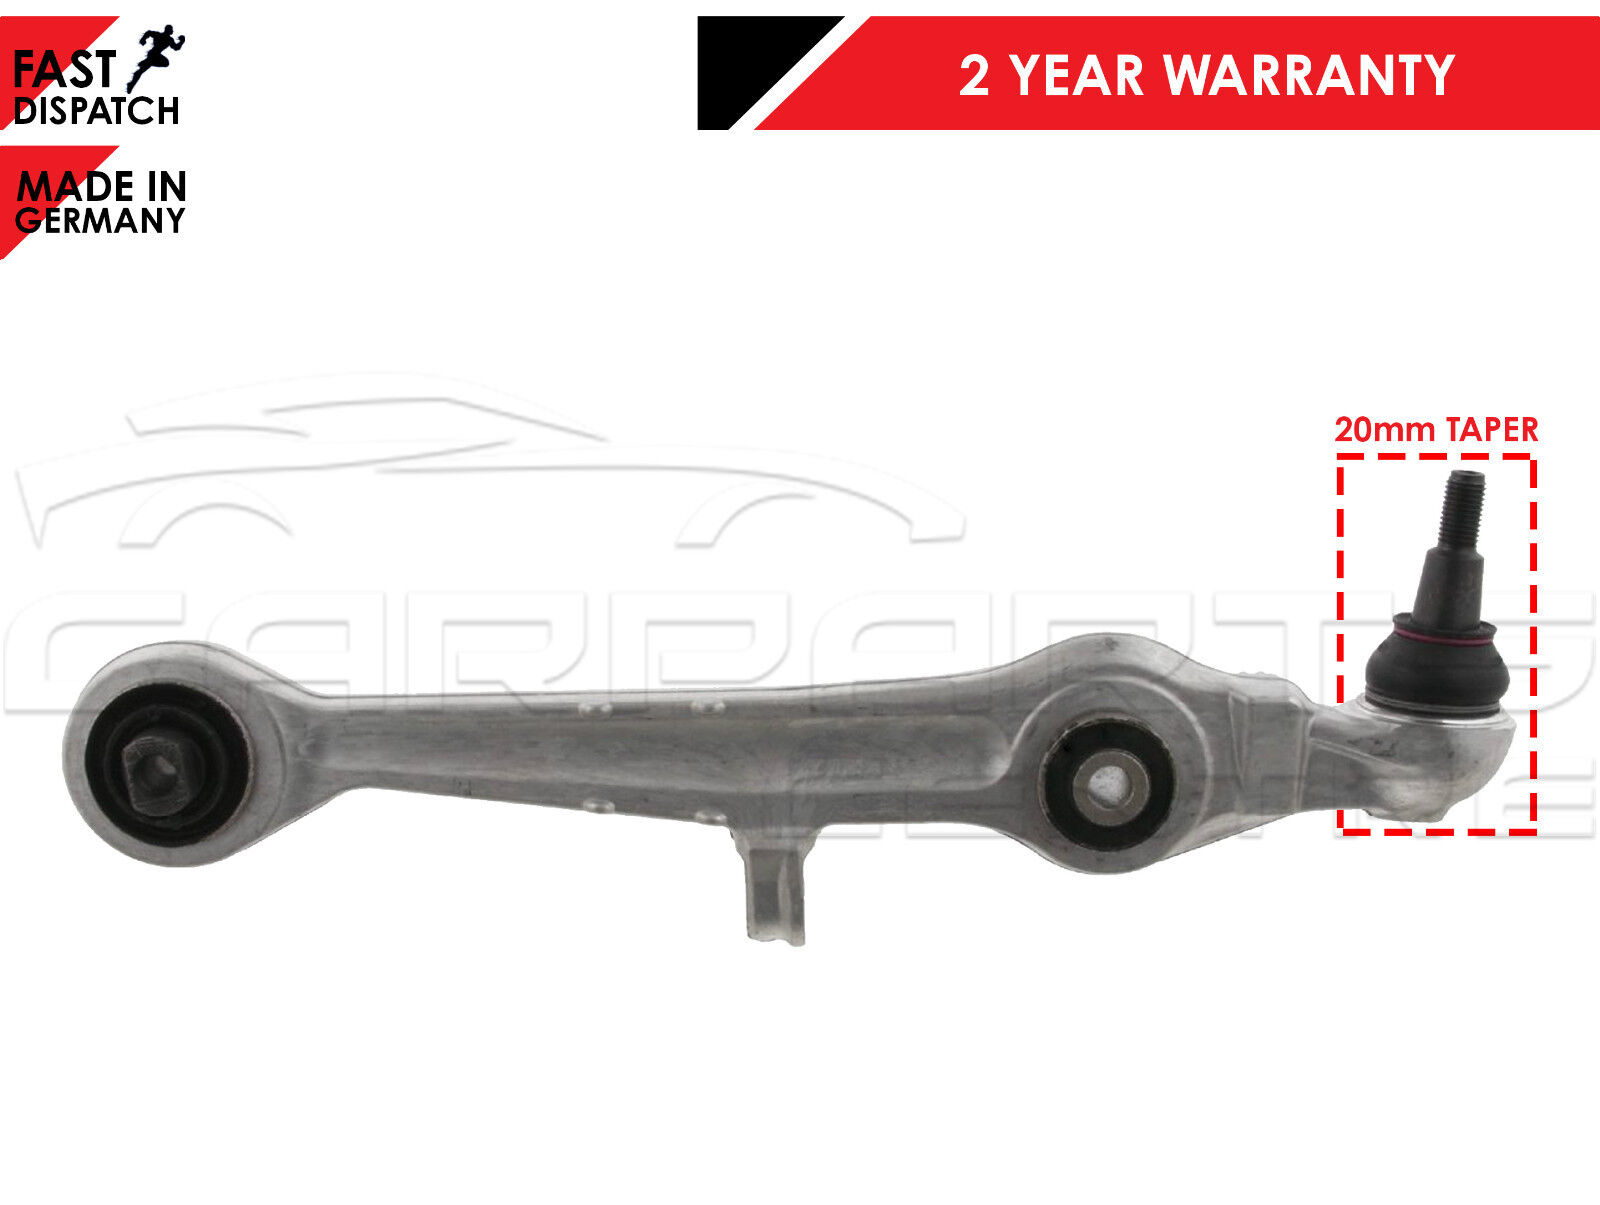 RIGHT FOR AUDI A4 A6 A8 FRONT LOWER SUSPENSION FRONT WISHBONE CONTROL ARM LEFT